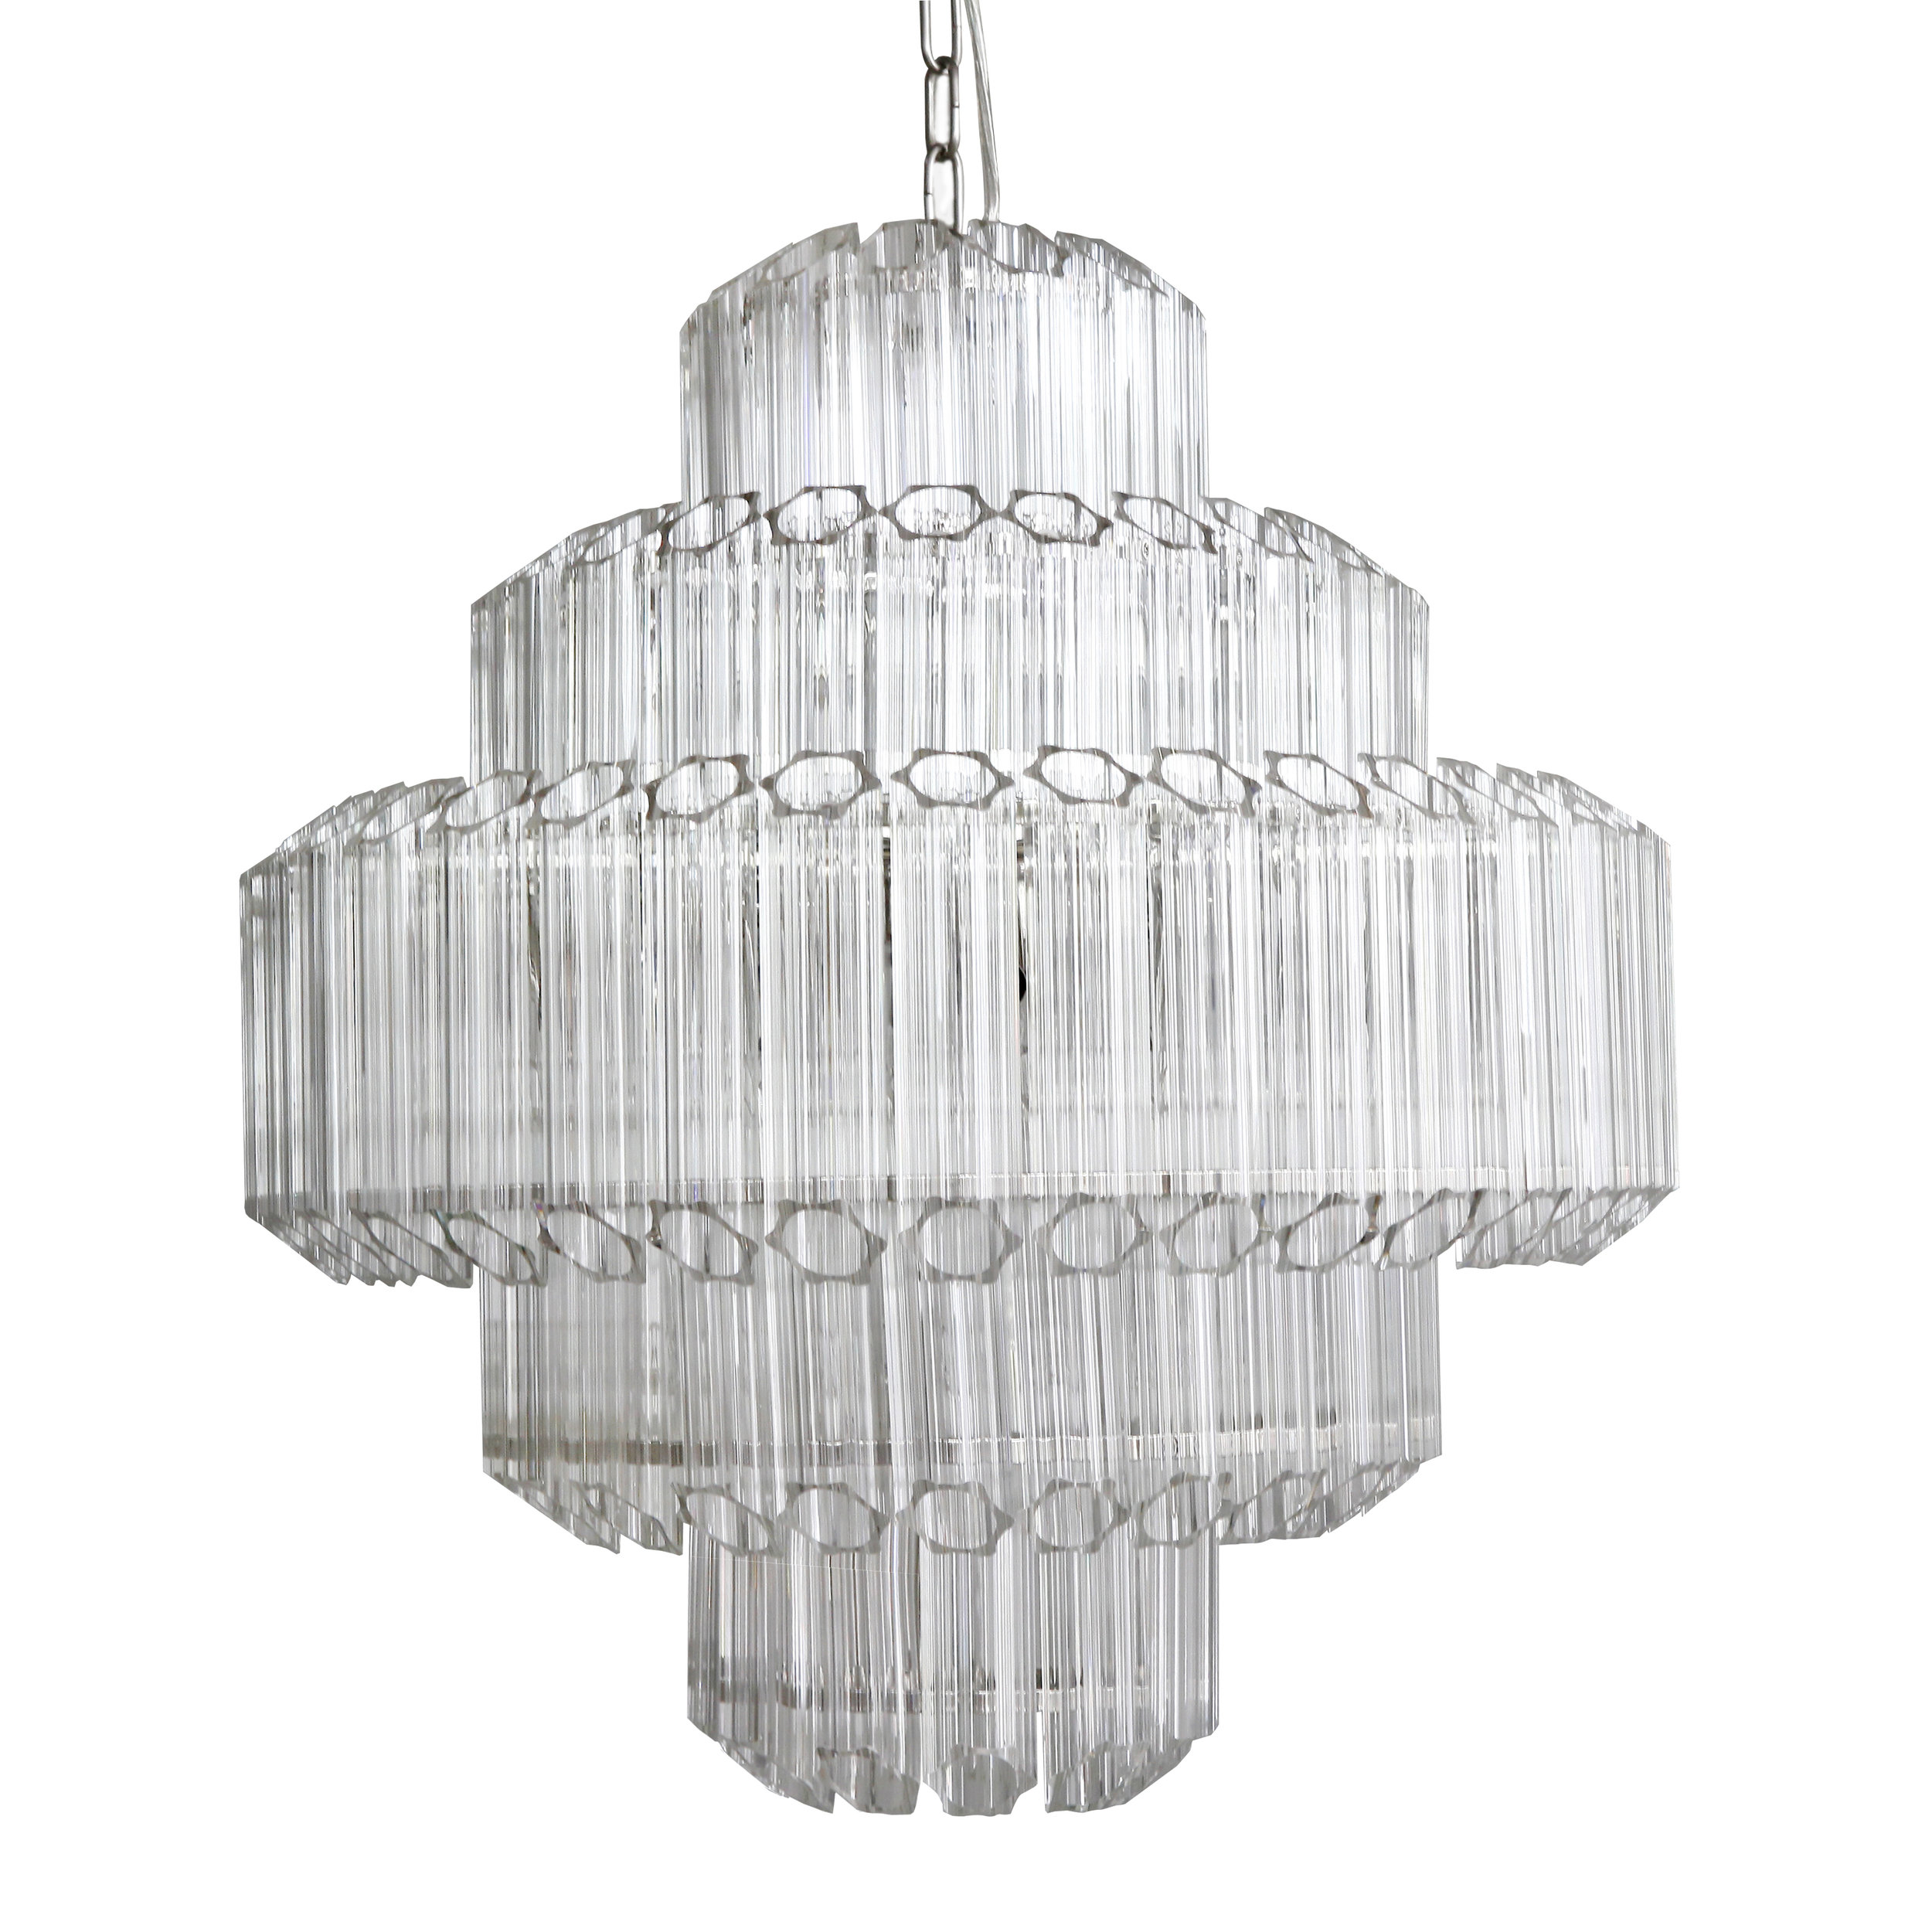 Viz Glass Beautiful Glass Chandeliers Pendants And Sconces For The Home